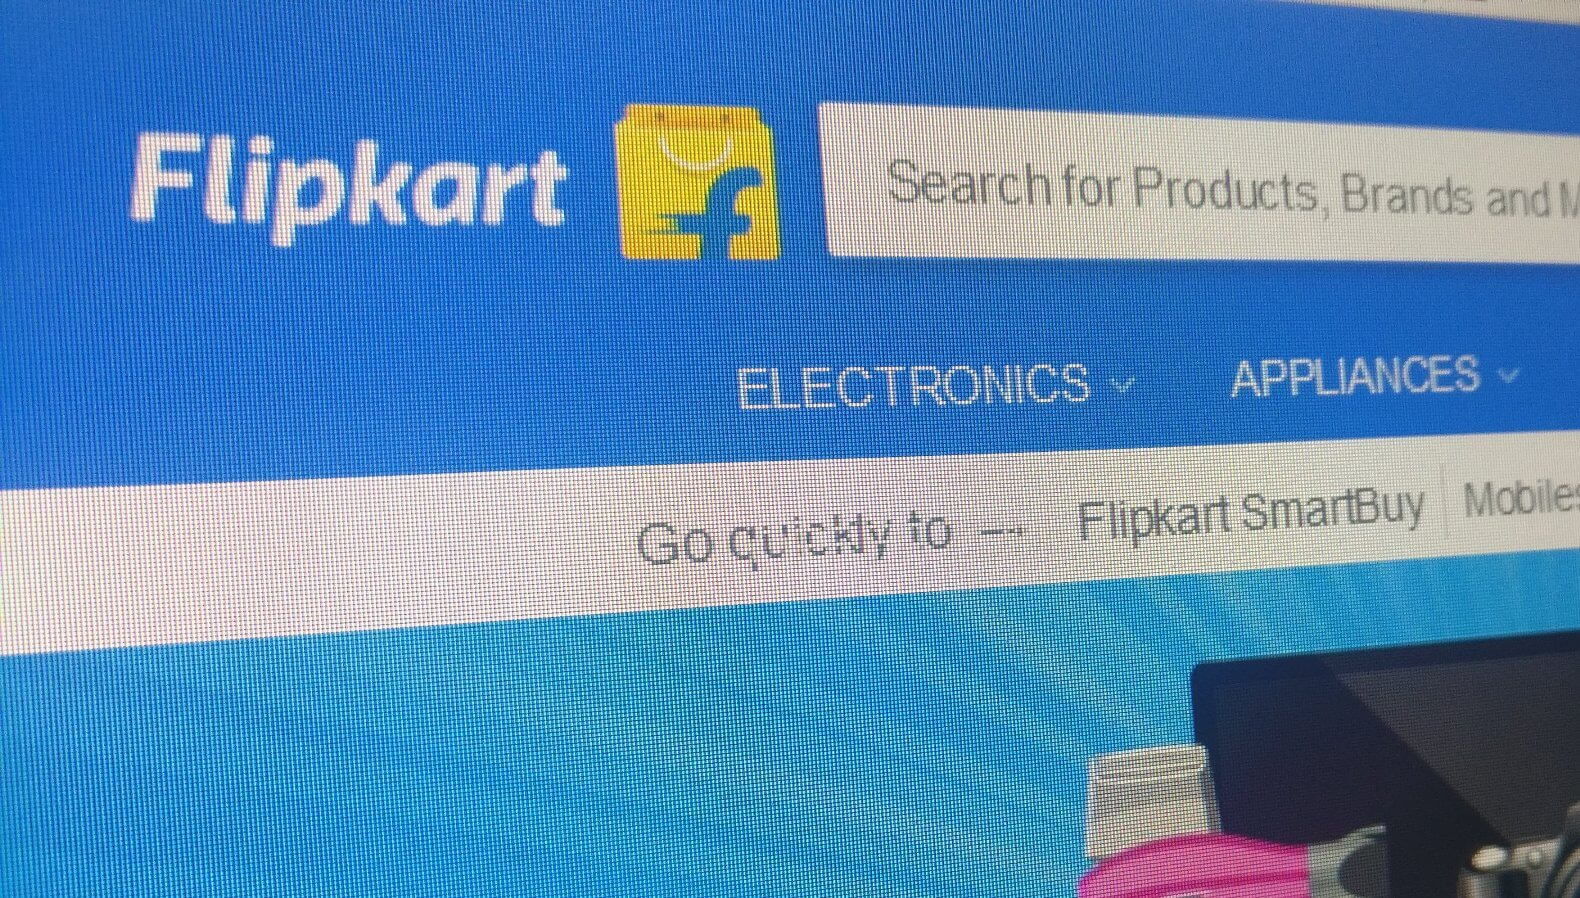 Flipkart Ebook App